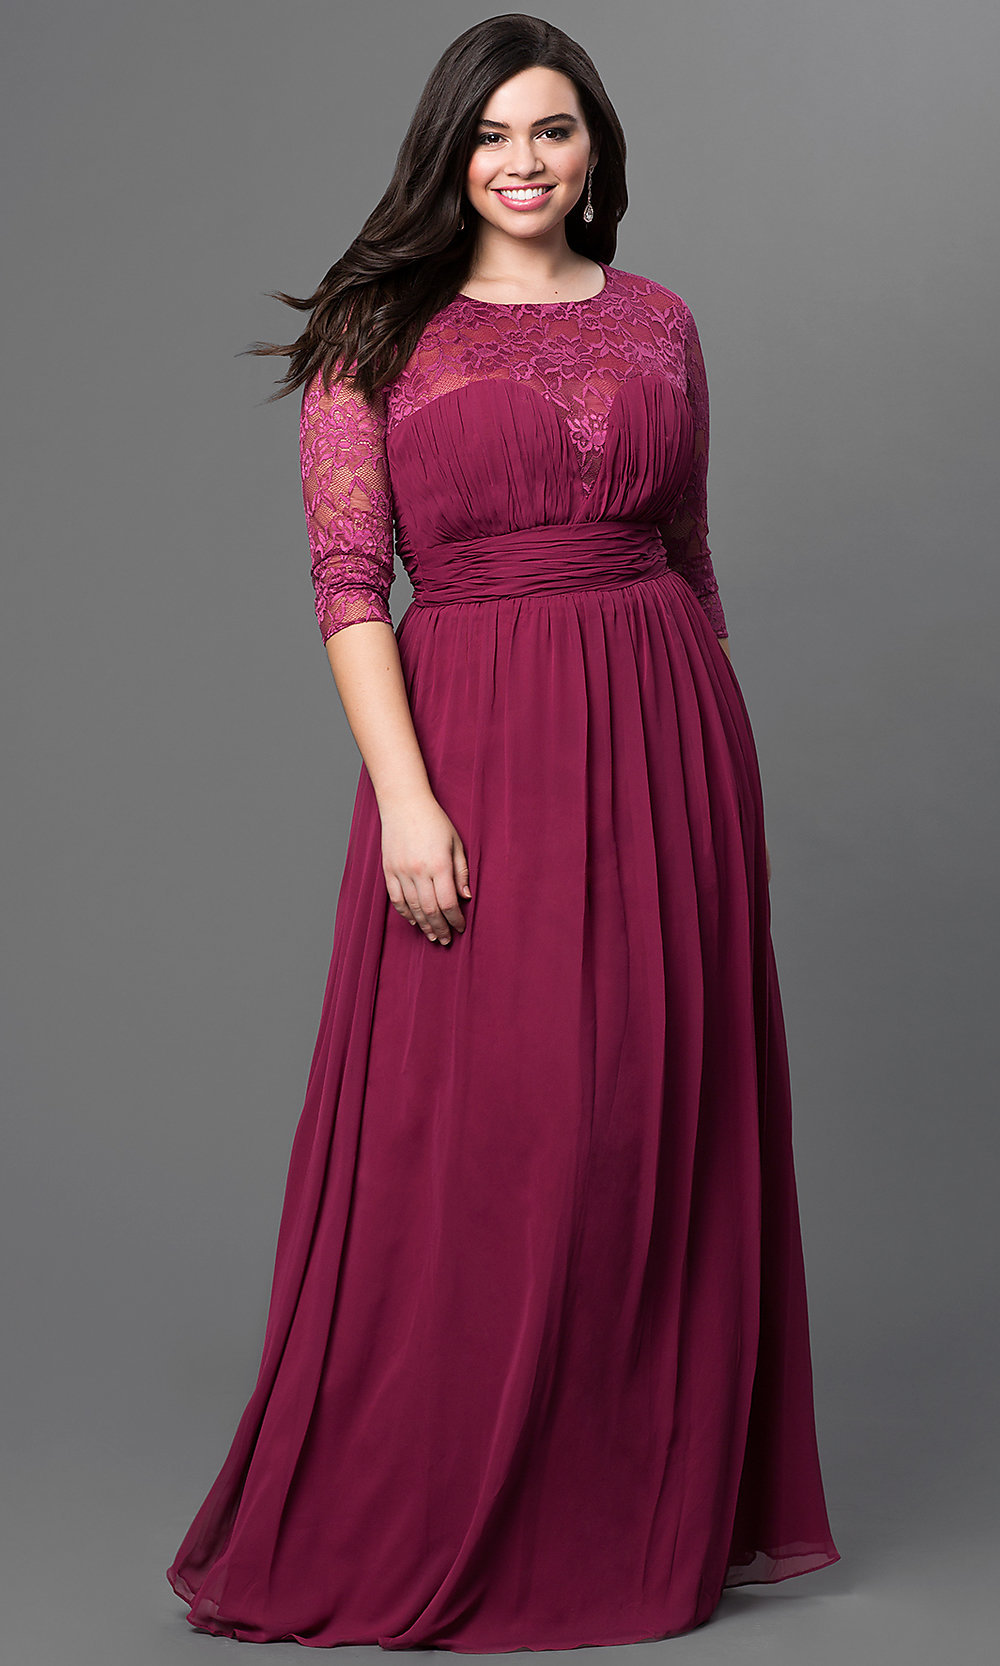 Long homecoming dresses plus size